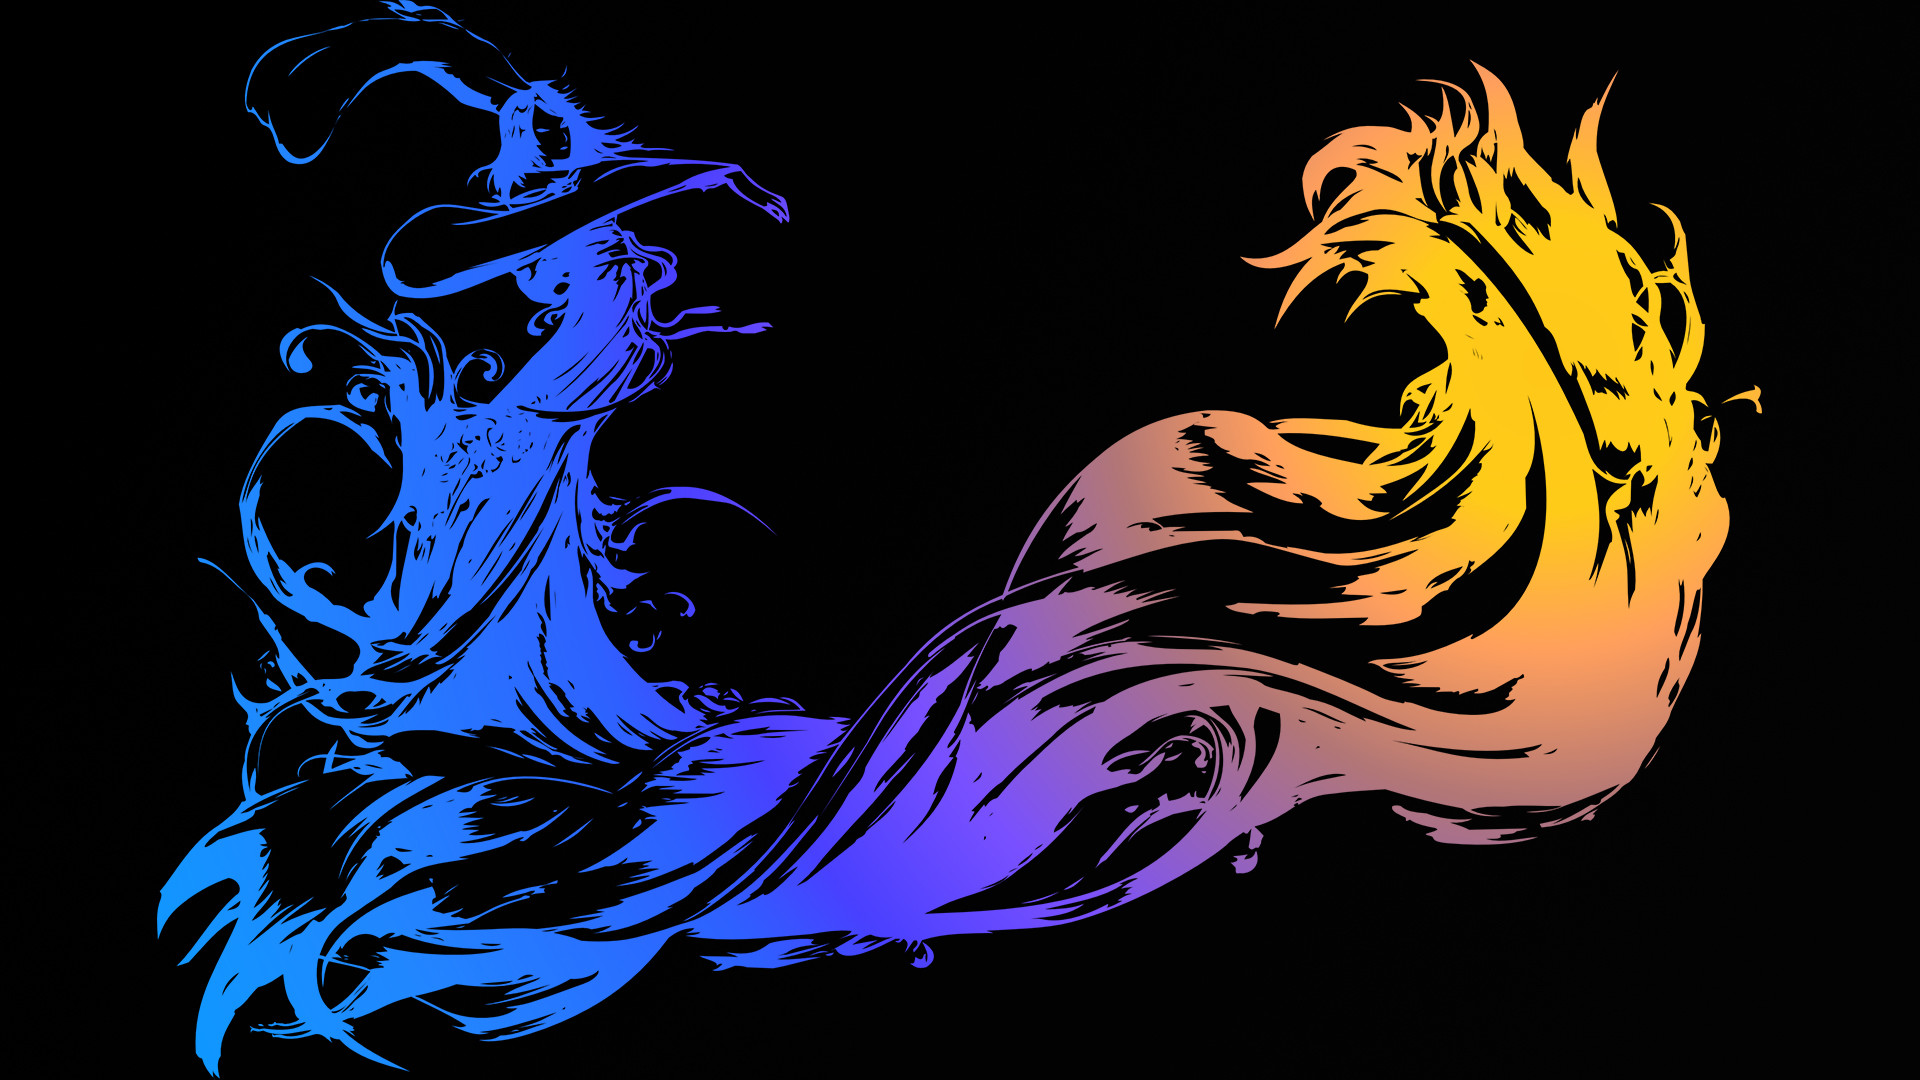 Someone requested it, so I made a Final Fantasy X wallpaper. Here it is!